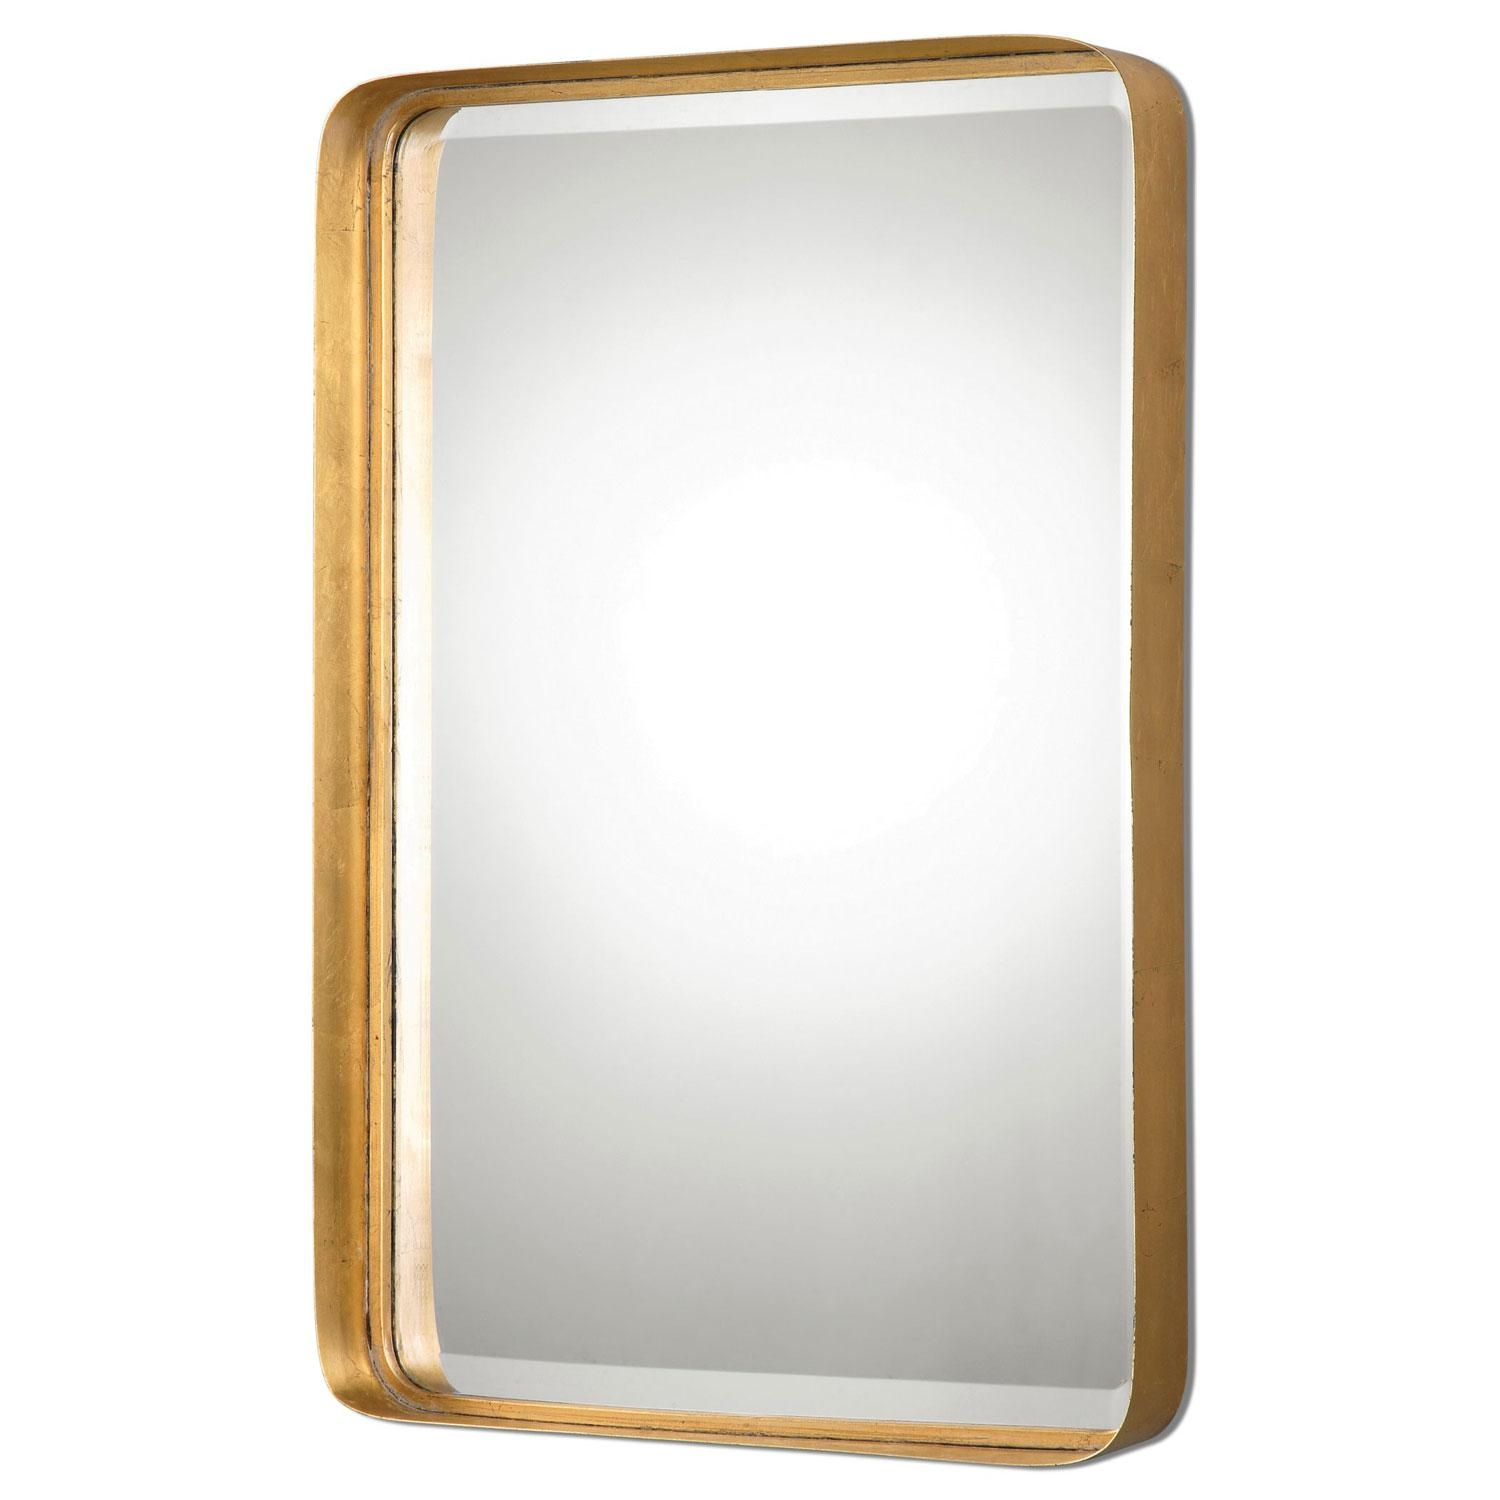 Gold Mirrors | Bellacor Regarding Extra Large Gold Mirror (View 17 of 20)